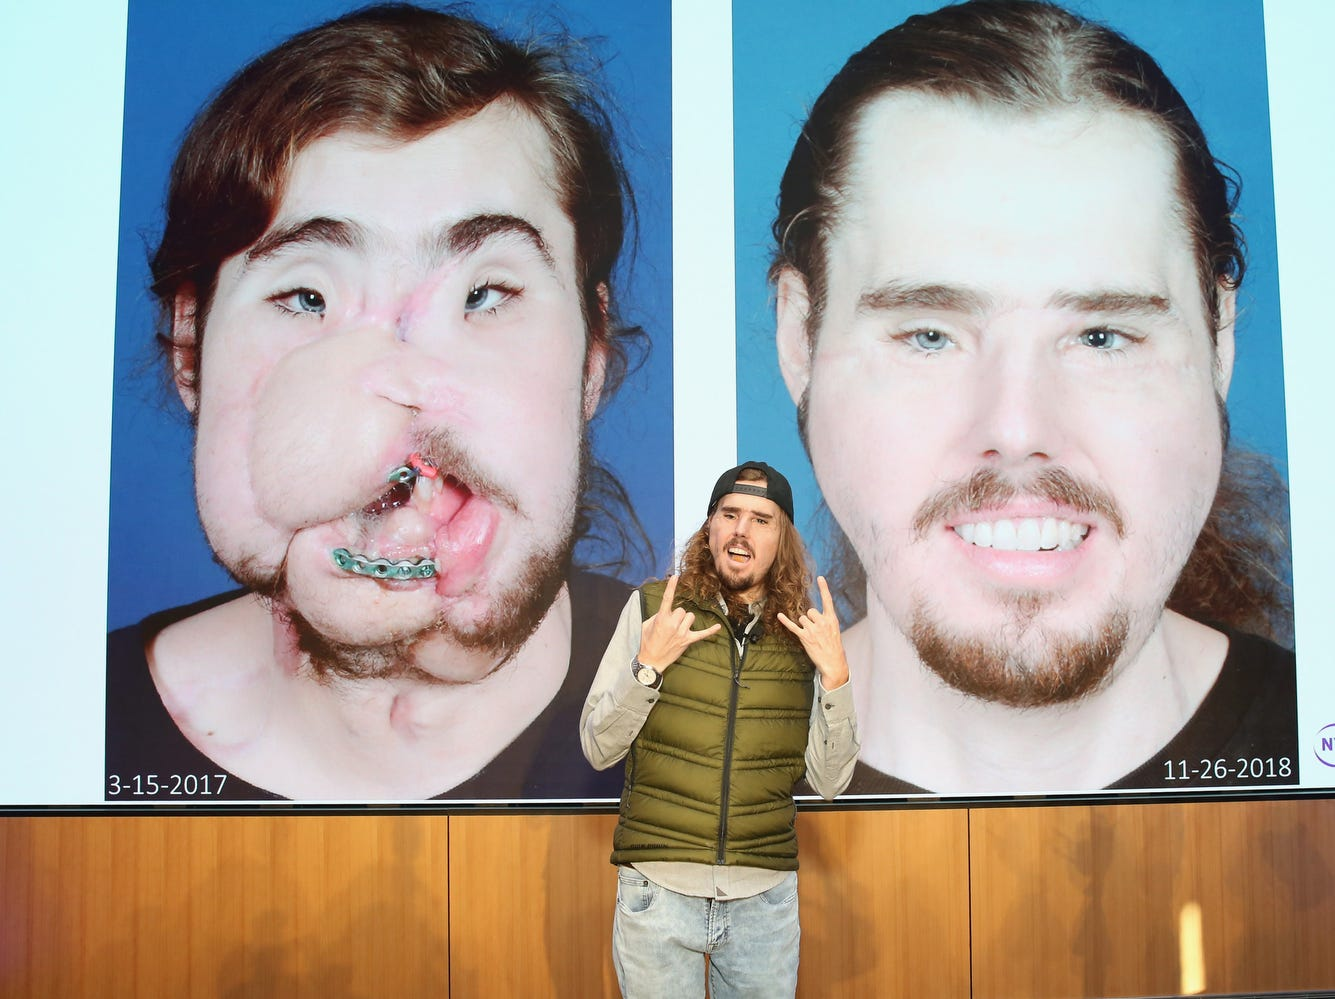 Cameron Underwood poses with his before and after face transplant photos at NYU Langone. Underwood tried to commit suicide by shooting himself in the face on June 2016.  Approximately 18 months later a team of 100 medical professionals performed the transformative surgery.